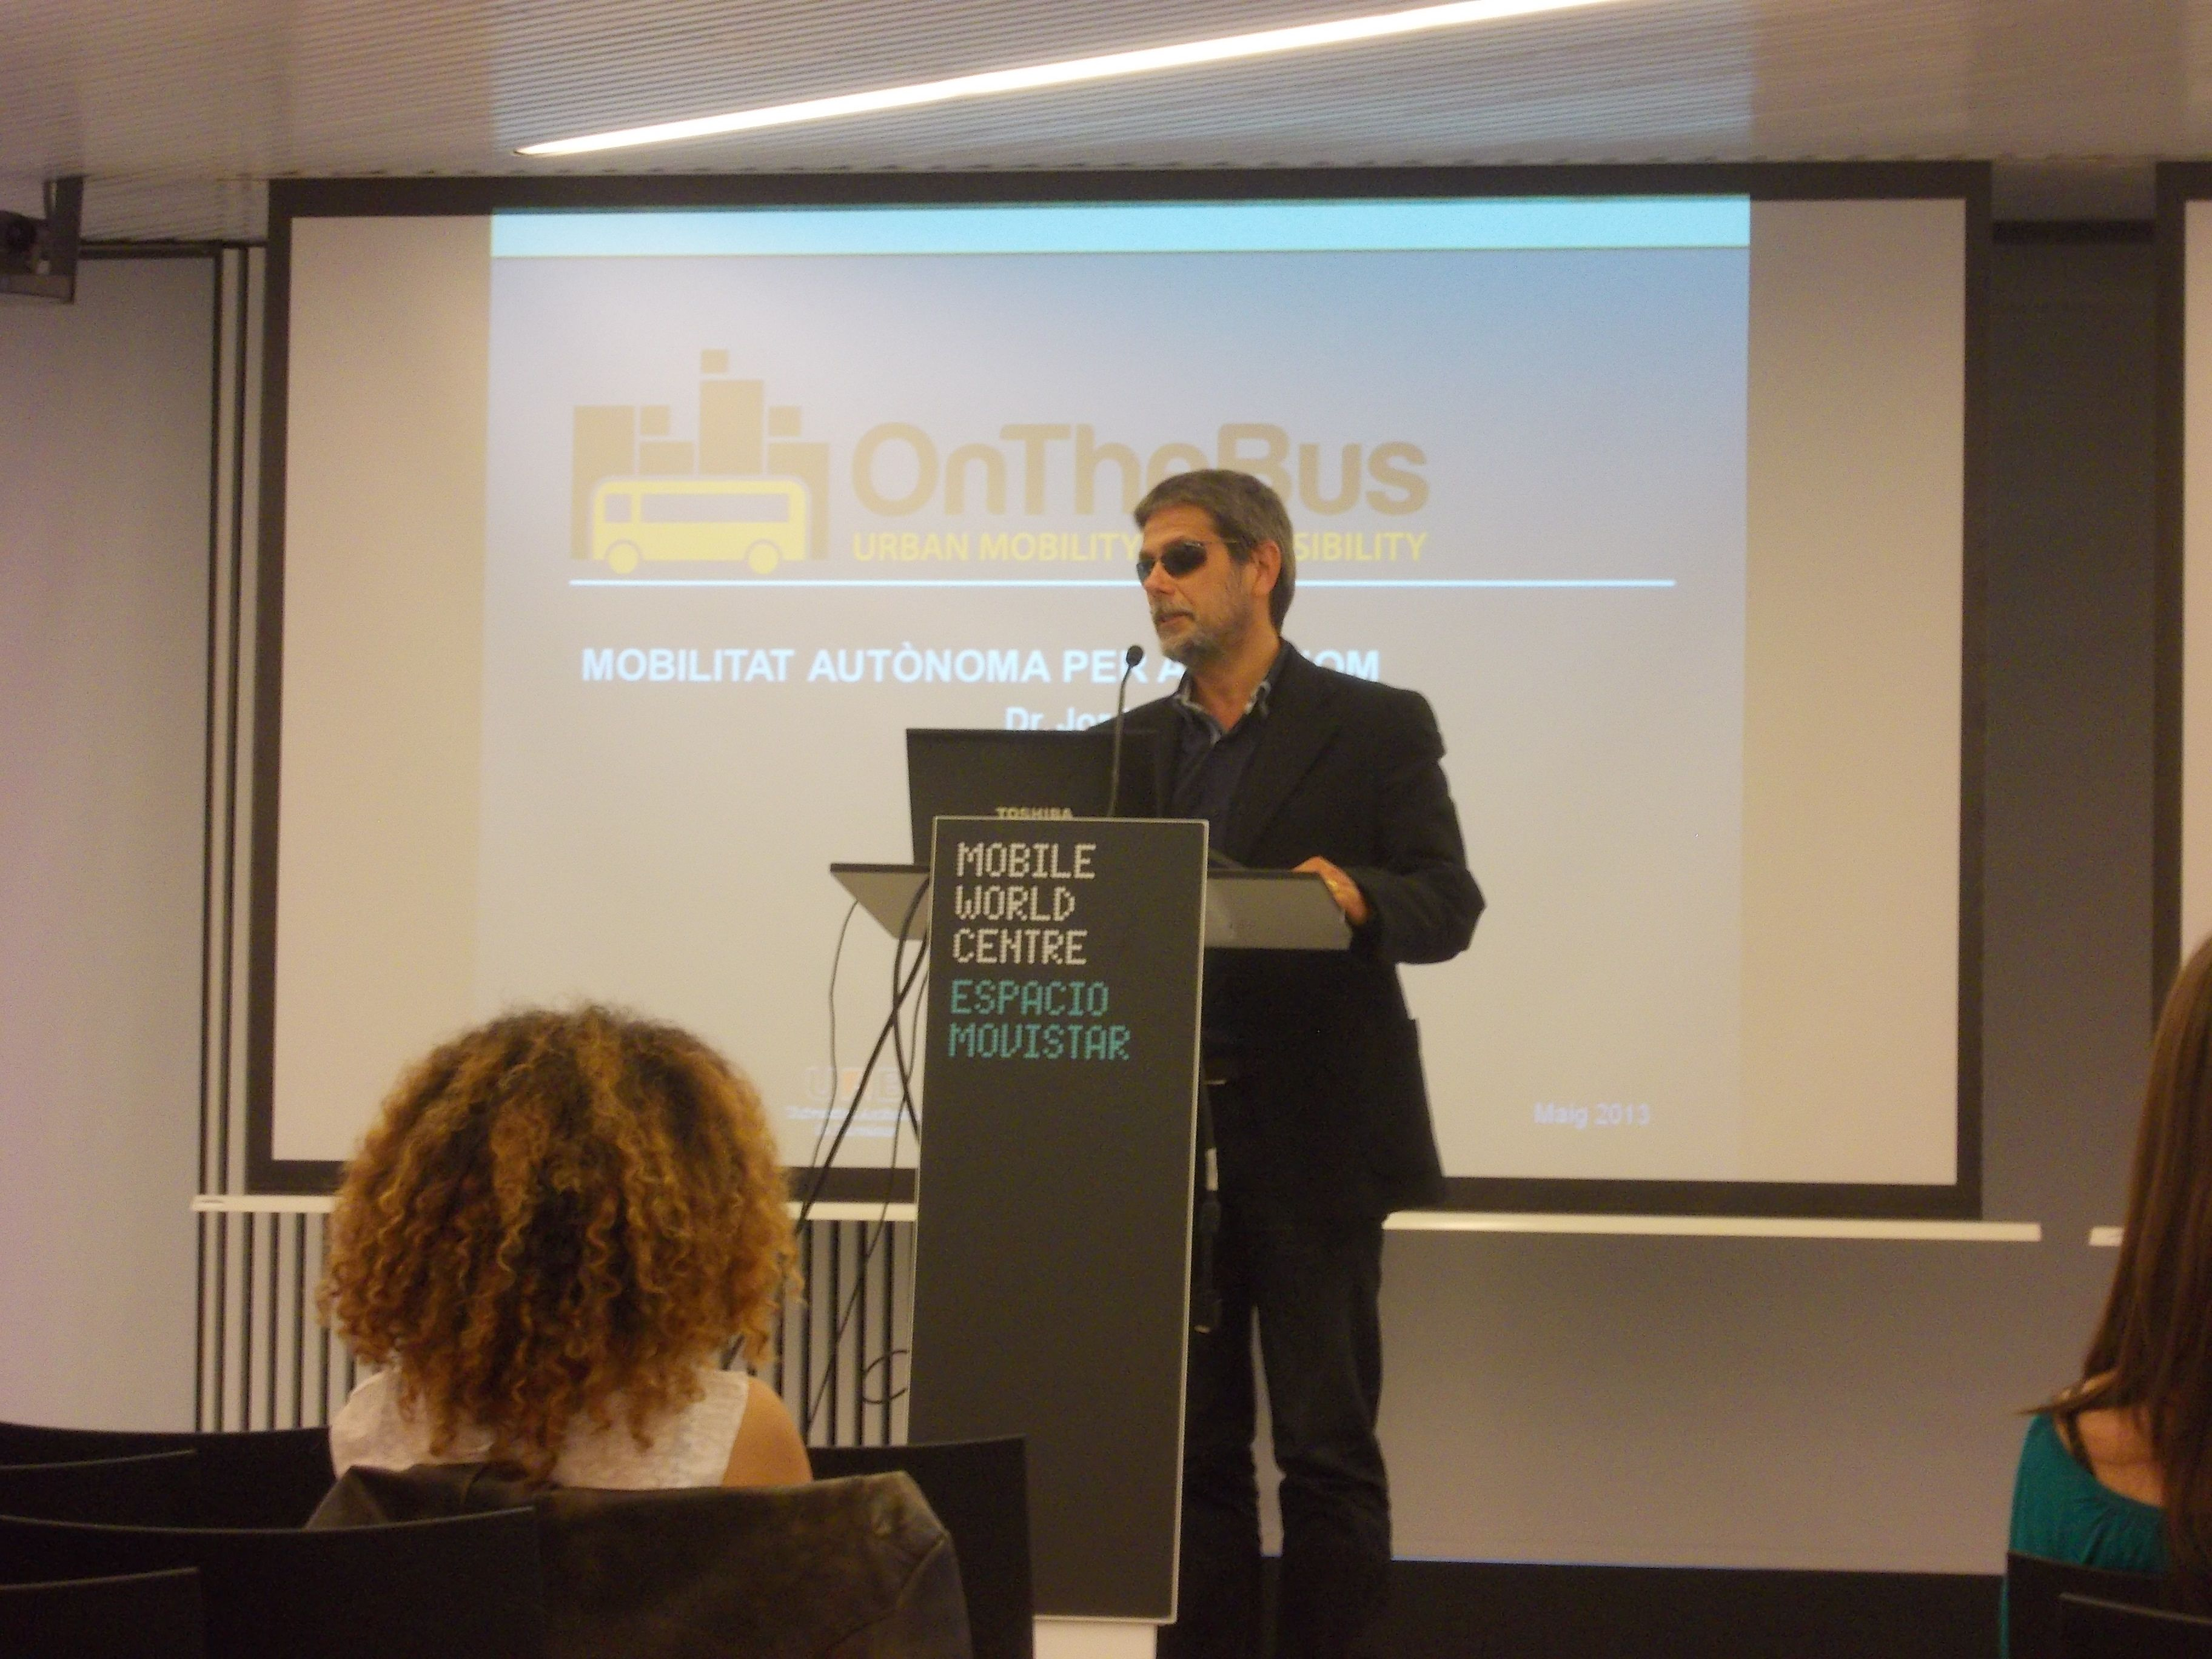 Digital Week Barcelona grandes presentaciones de productos/servicios como ON THE BUS #marketing